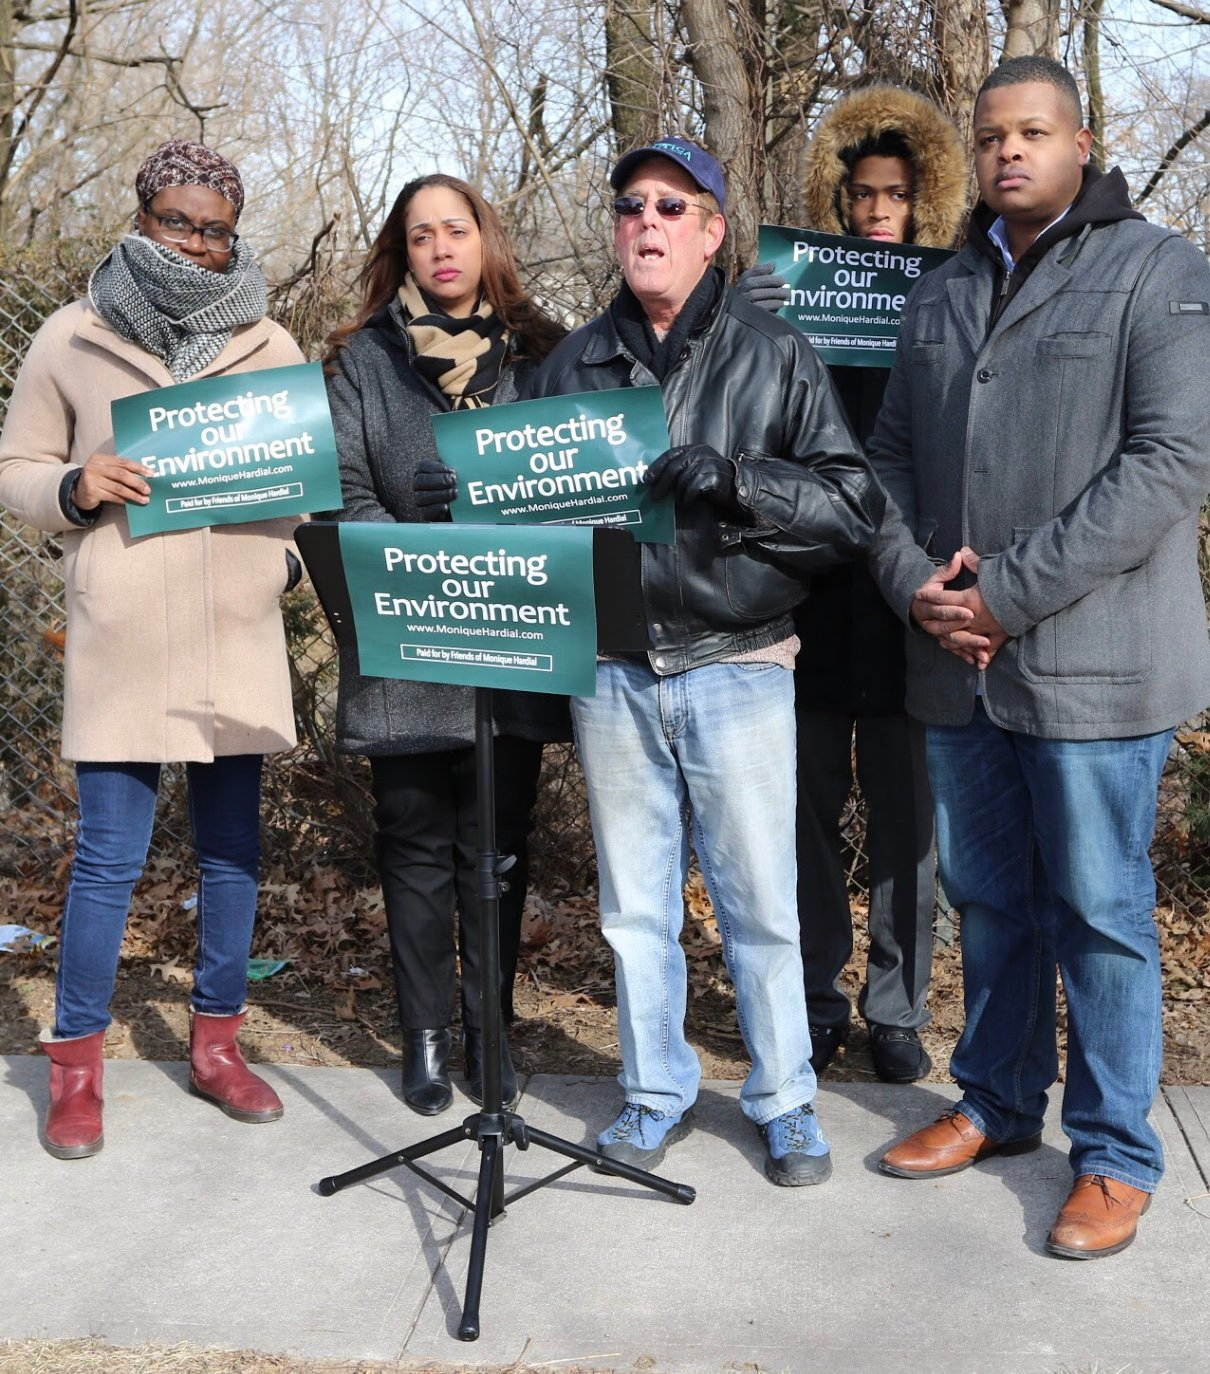 Long-time Elmont resident Andrew Prescia, center, joined community advocates Carl Achilles, right, and Monique Hardial, left, in demanding that Nassau County clean up the storm water basin at Benson and Kiefer avenues.